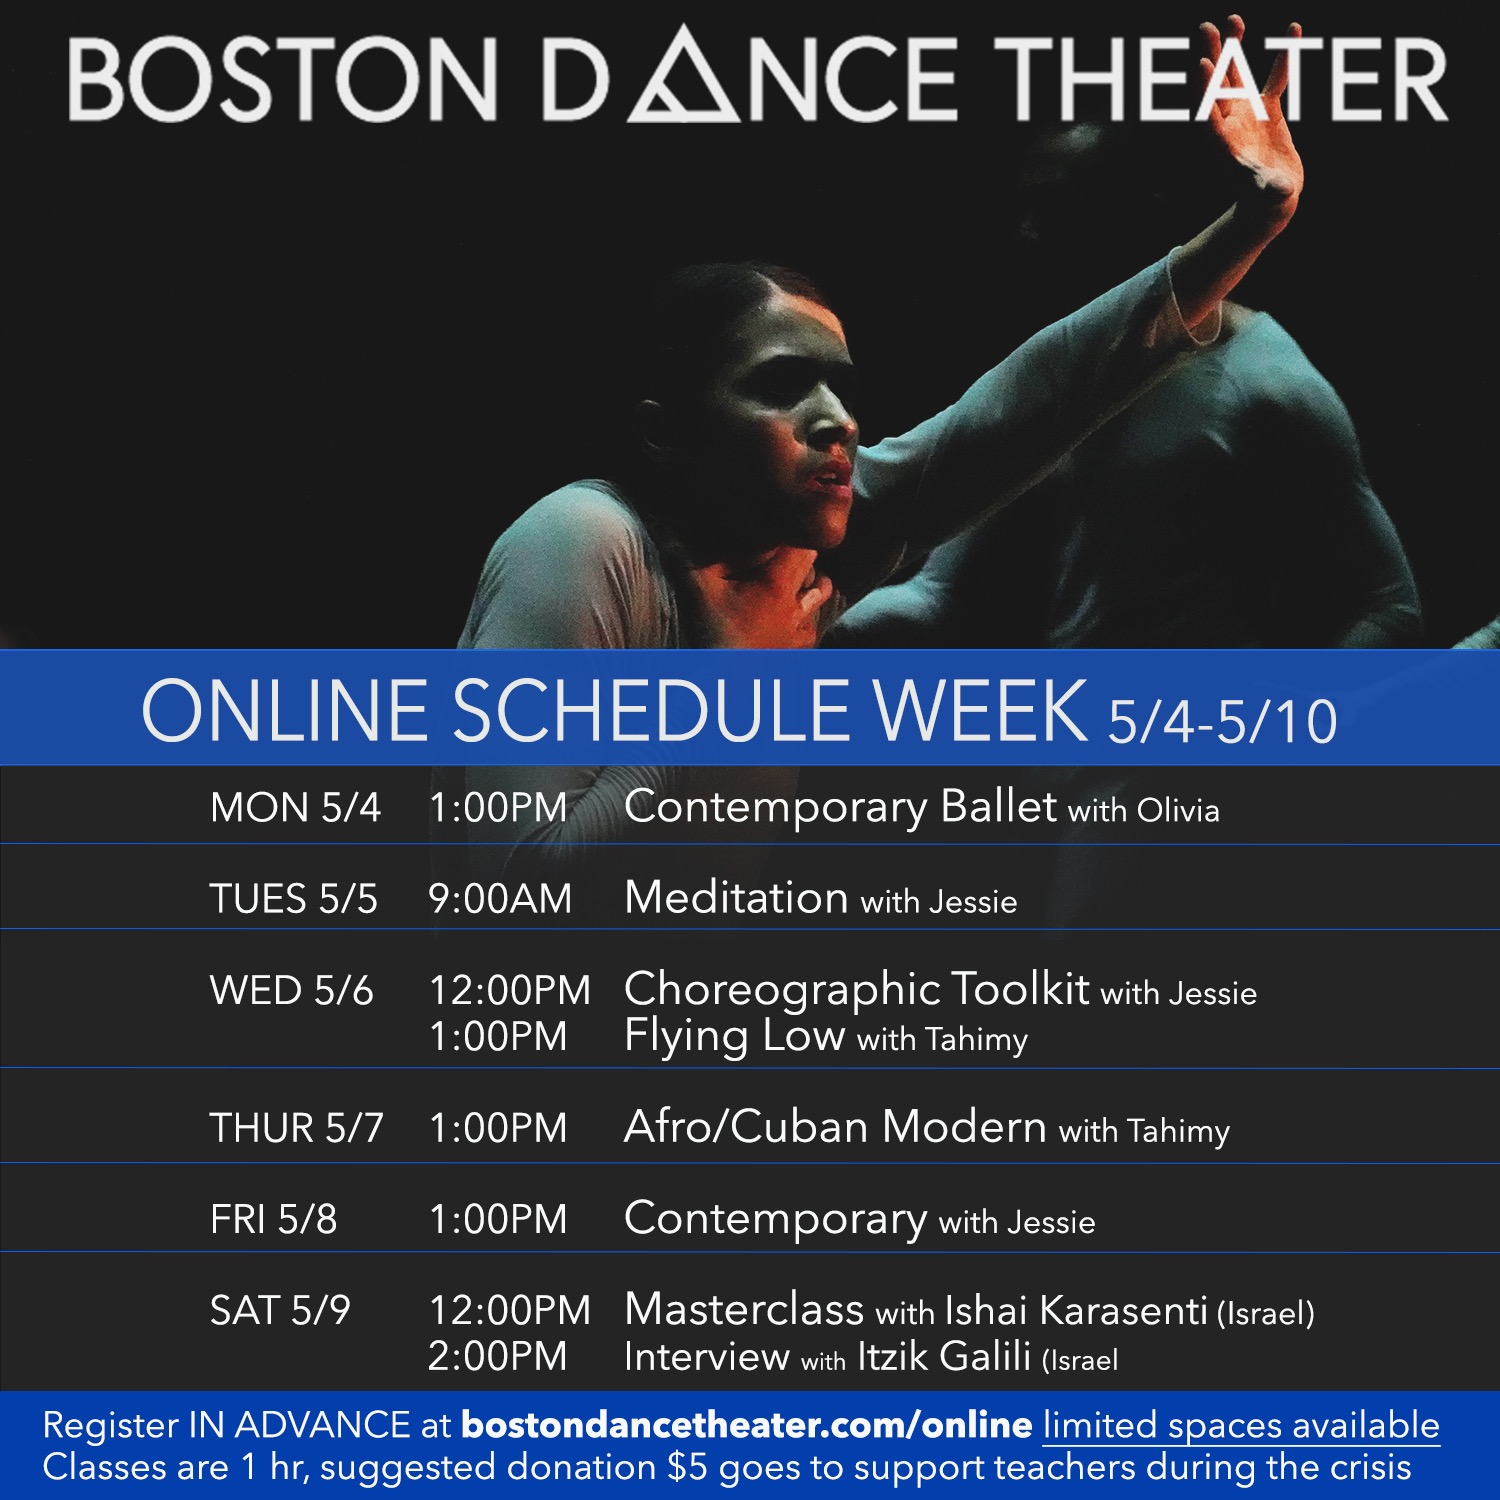 Acro/Contemporary Masterclass with Ishai Karasenti (Israel), hosted by Boston Dance Theater